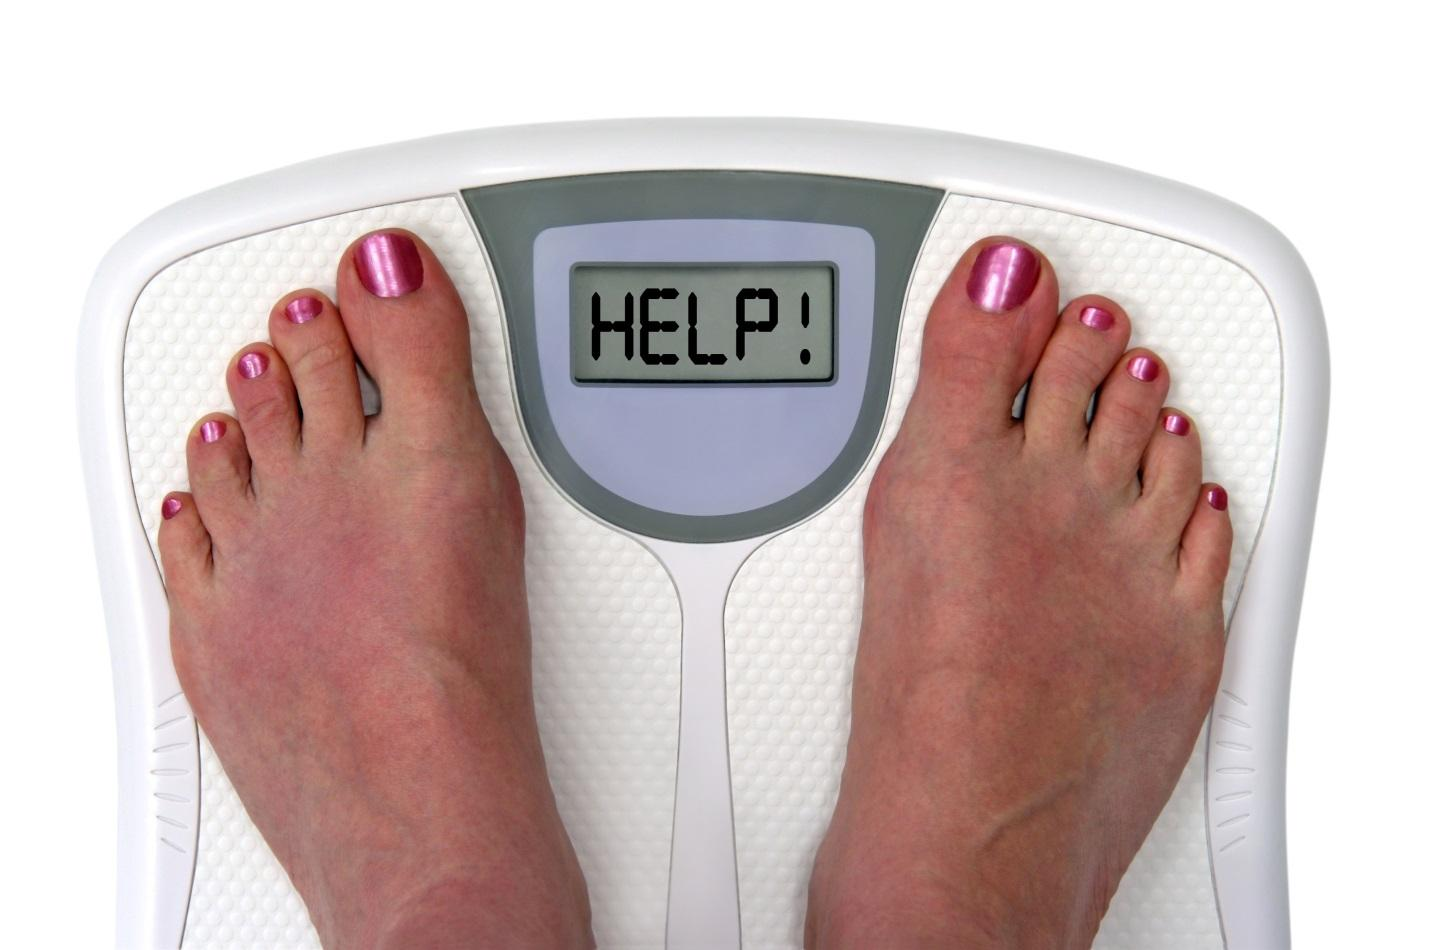 http://blogs.jpmsonline.com/wp-content/uploads/2014/12/Obesity.jpg